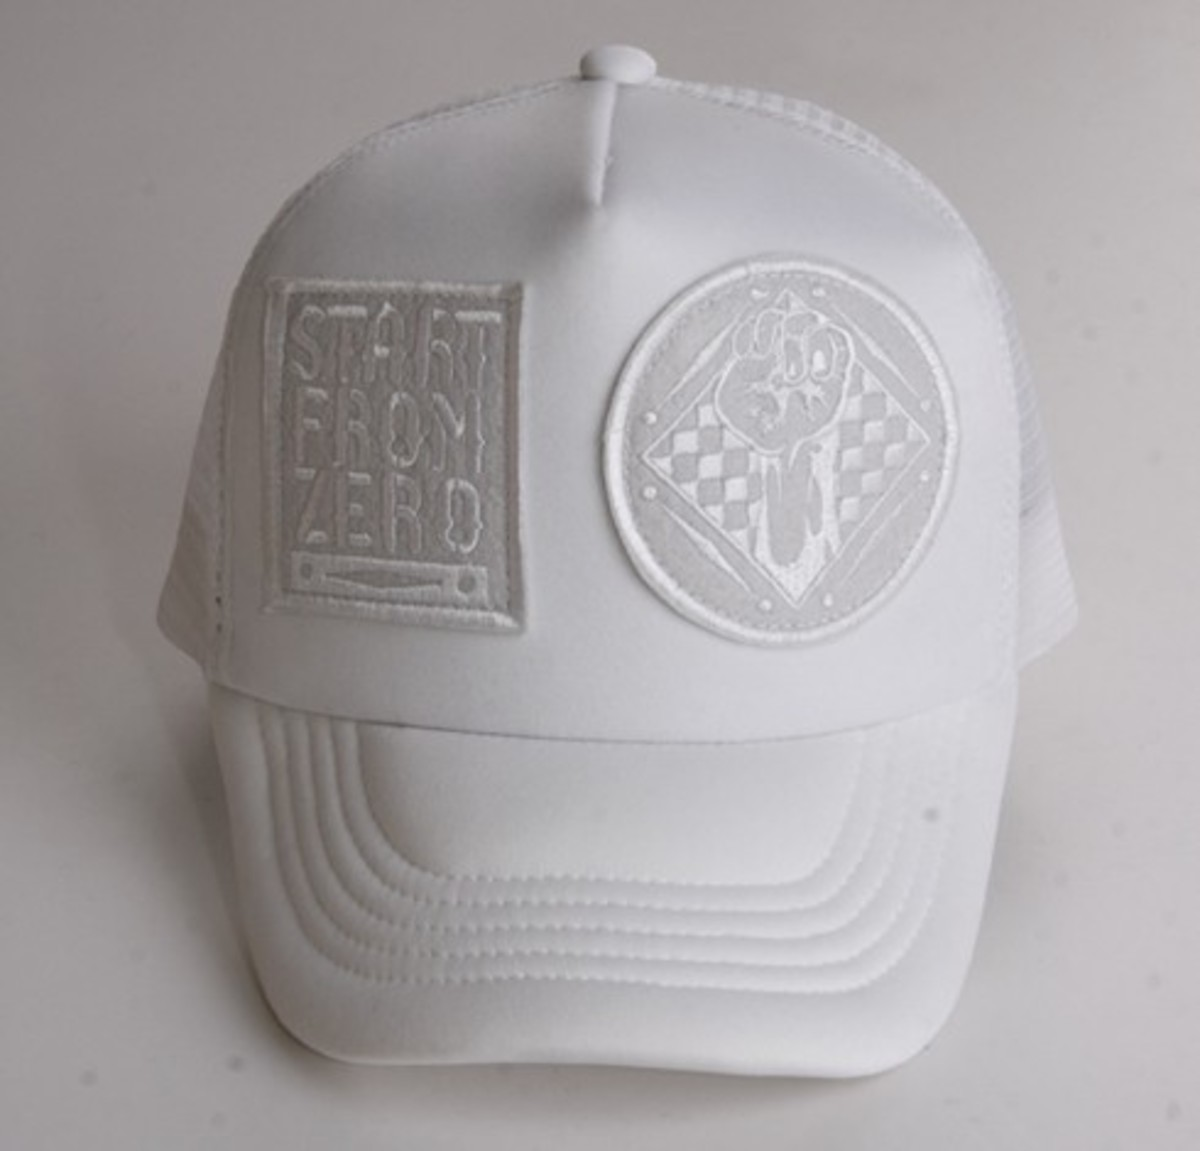 freshness-trucker-white-patches.jpg